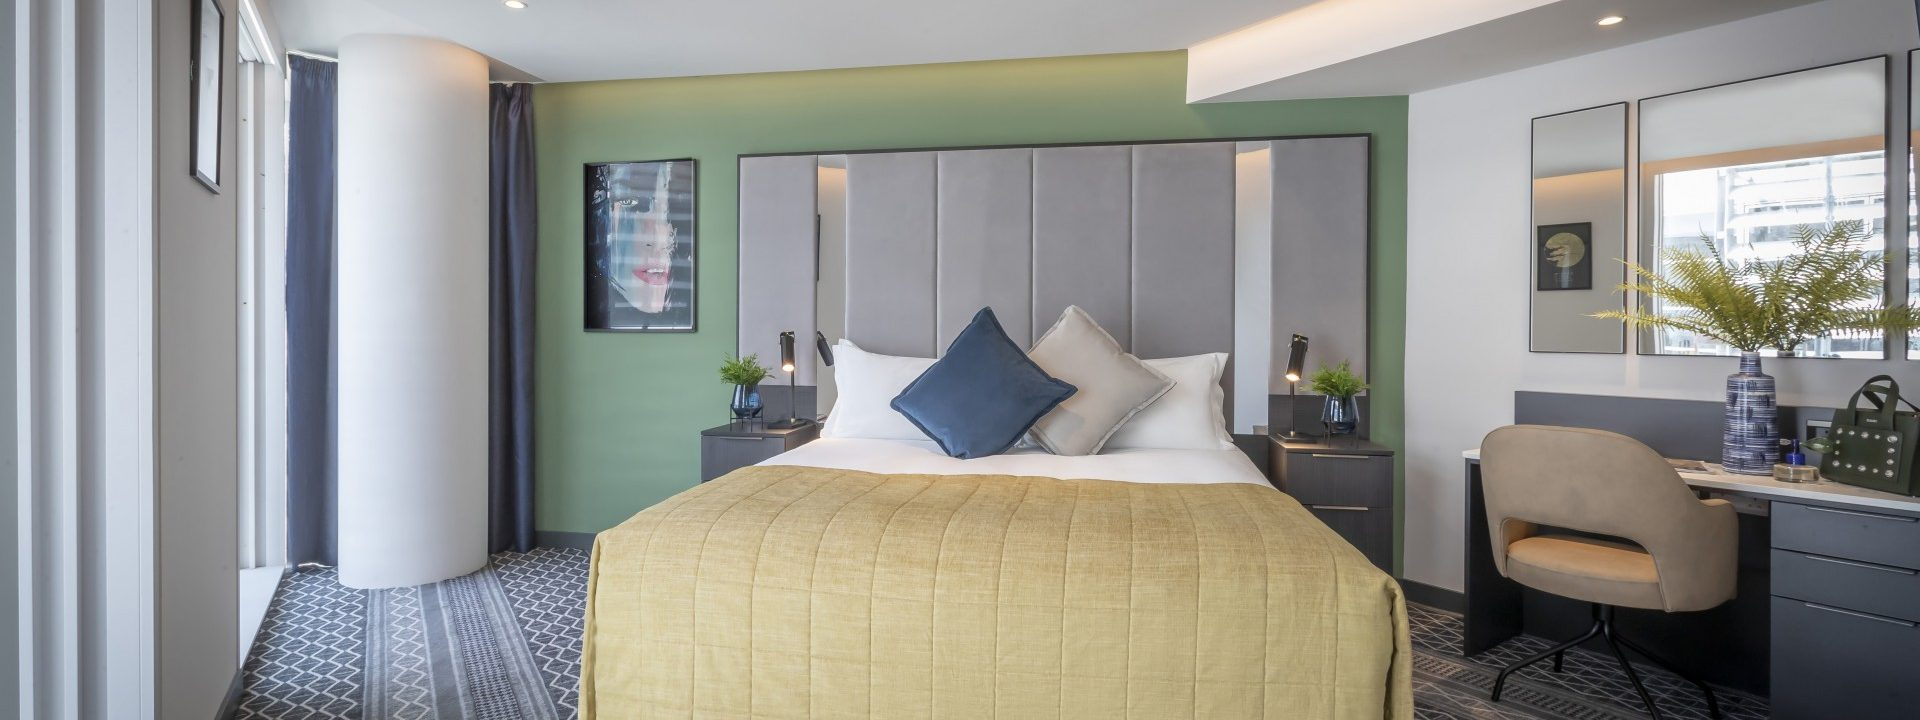 Dublin's new Marlin Hotel is a stylish mash-up of contemporary design and tech-forward amenities